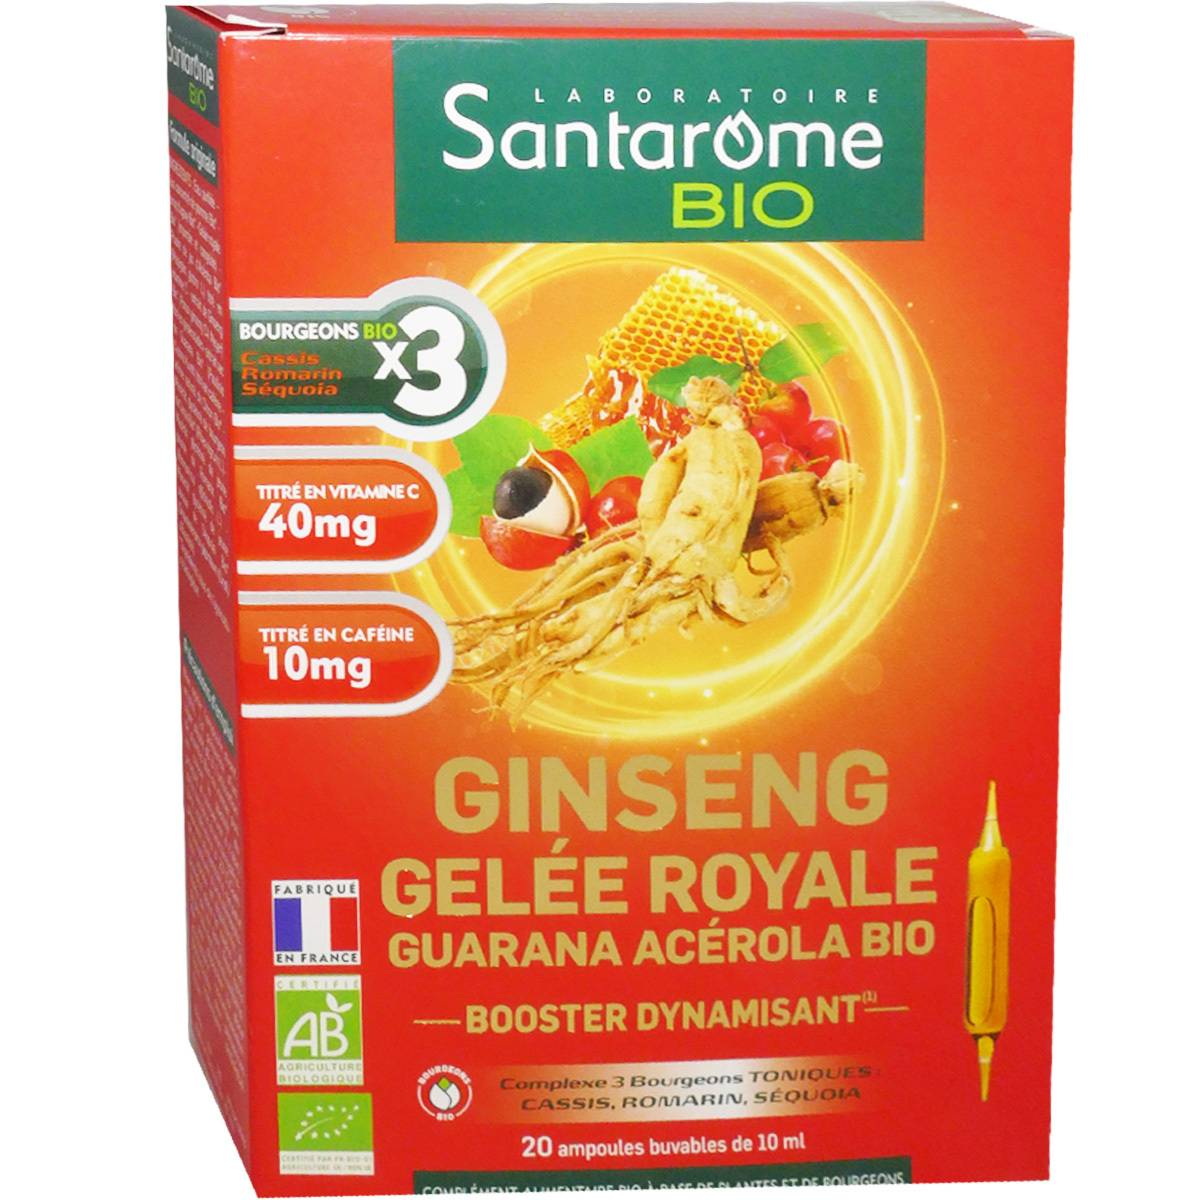 Santarome bio ginseng gelee royale guarana booster 20 ampoules 10 ml